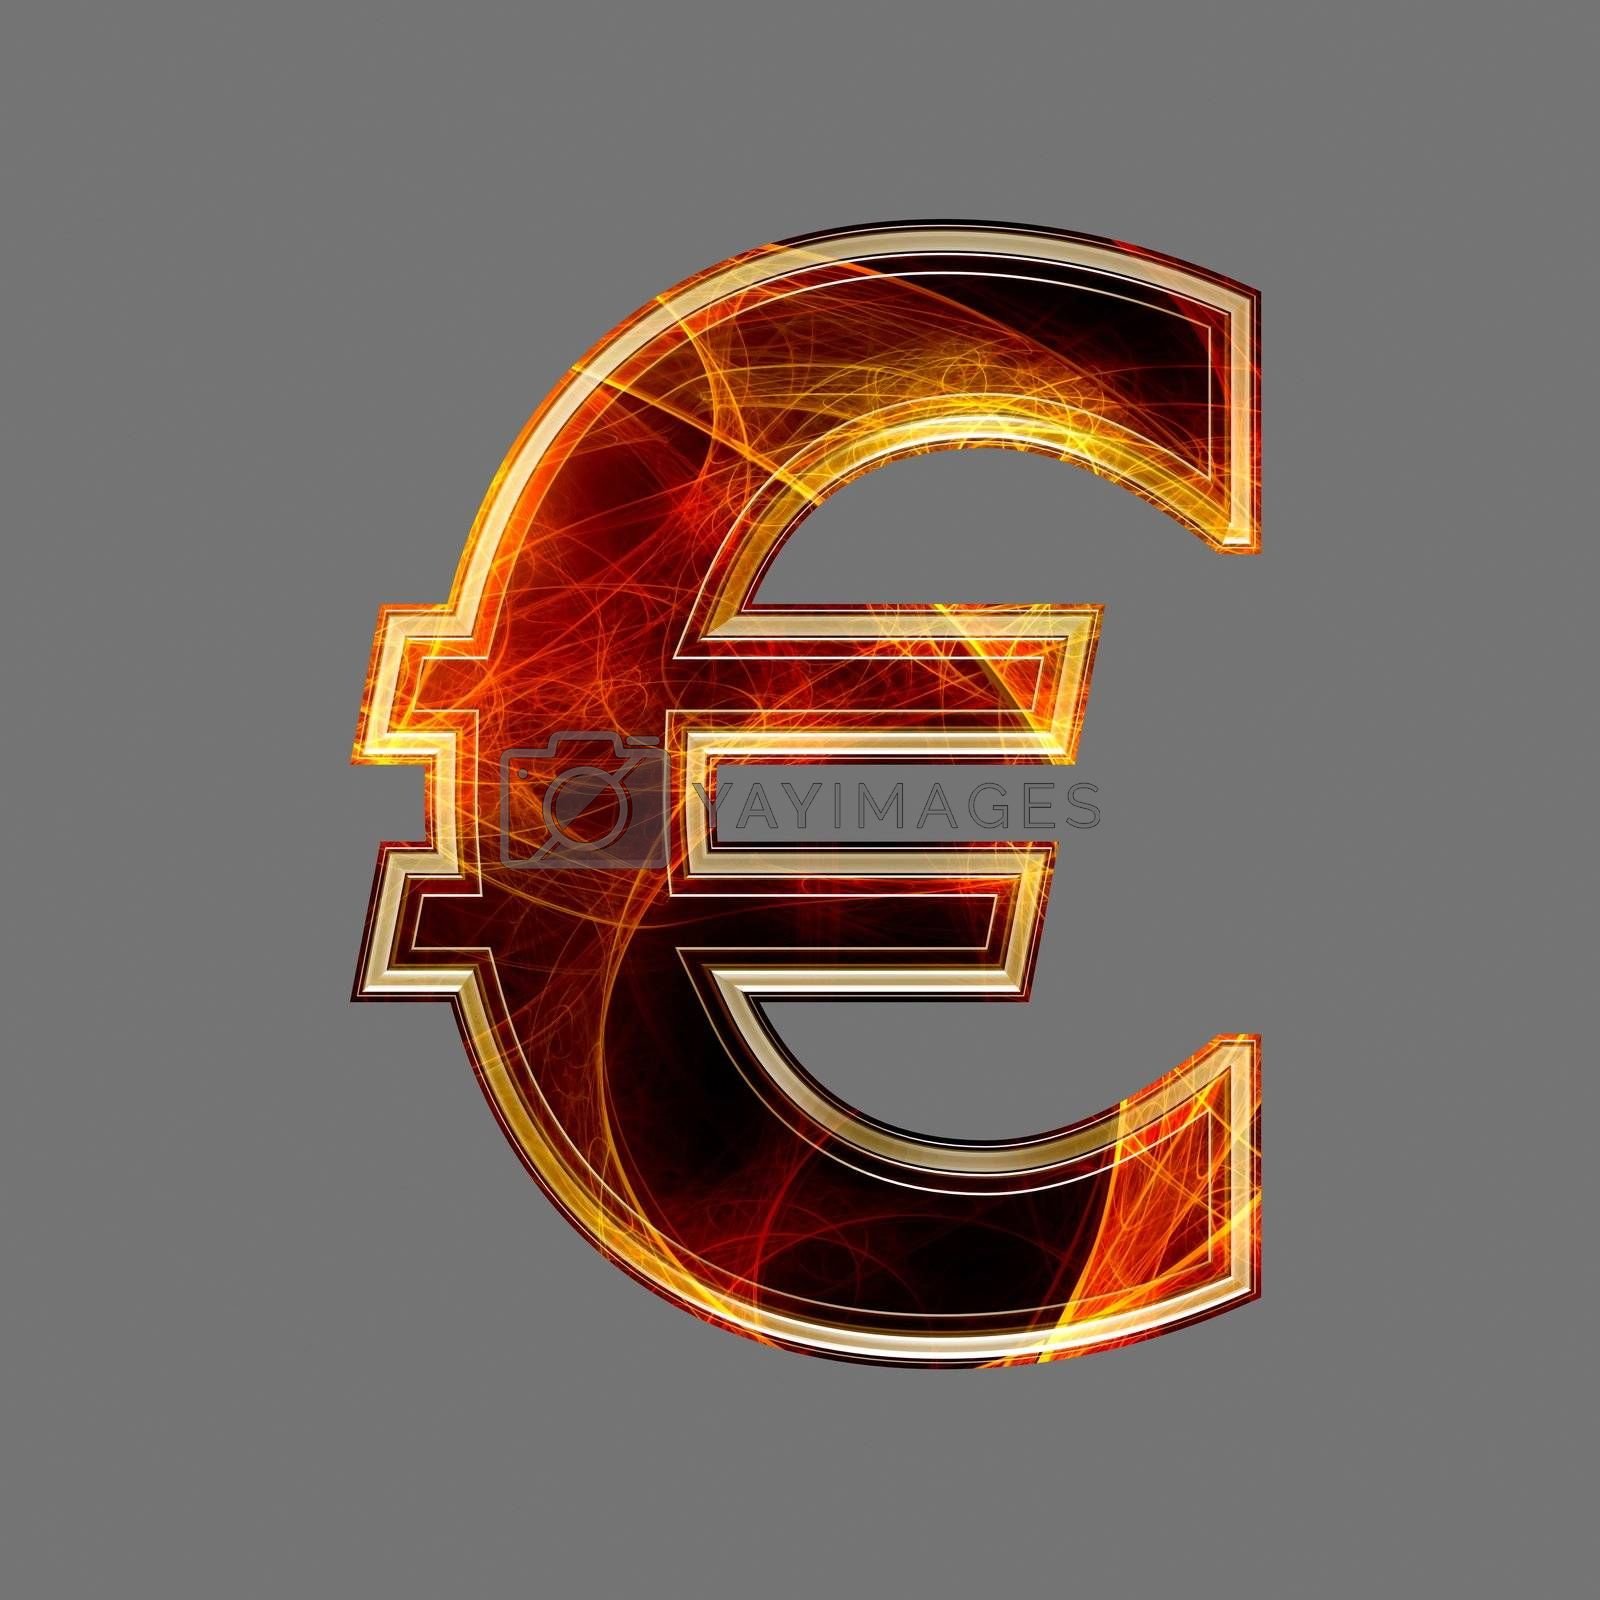 3d abstract and futuristic currency sign - euro